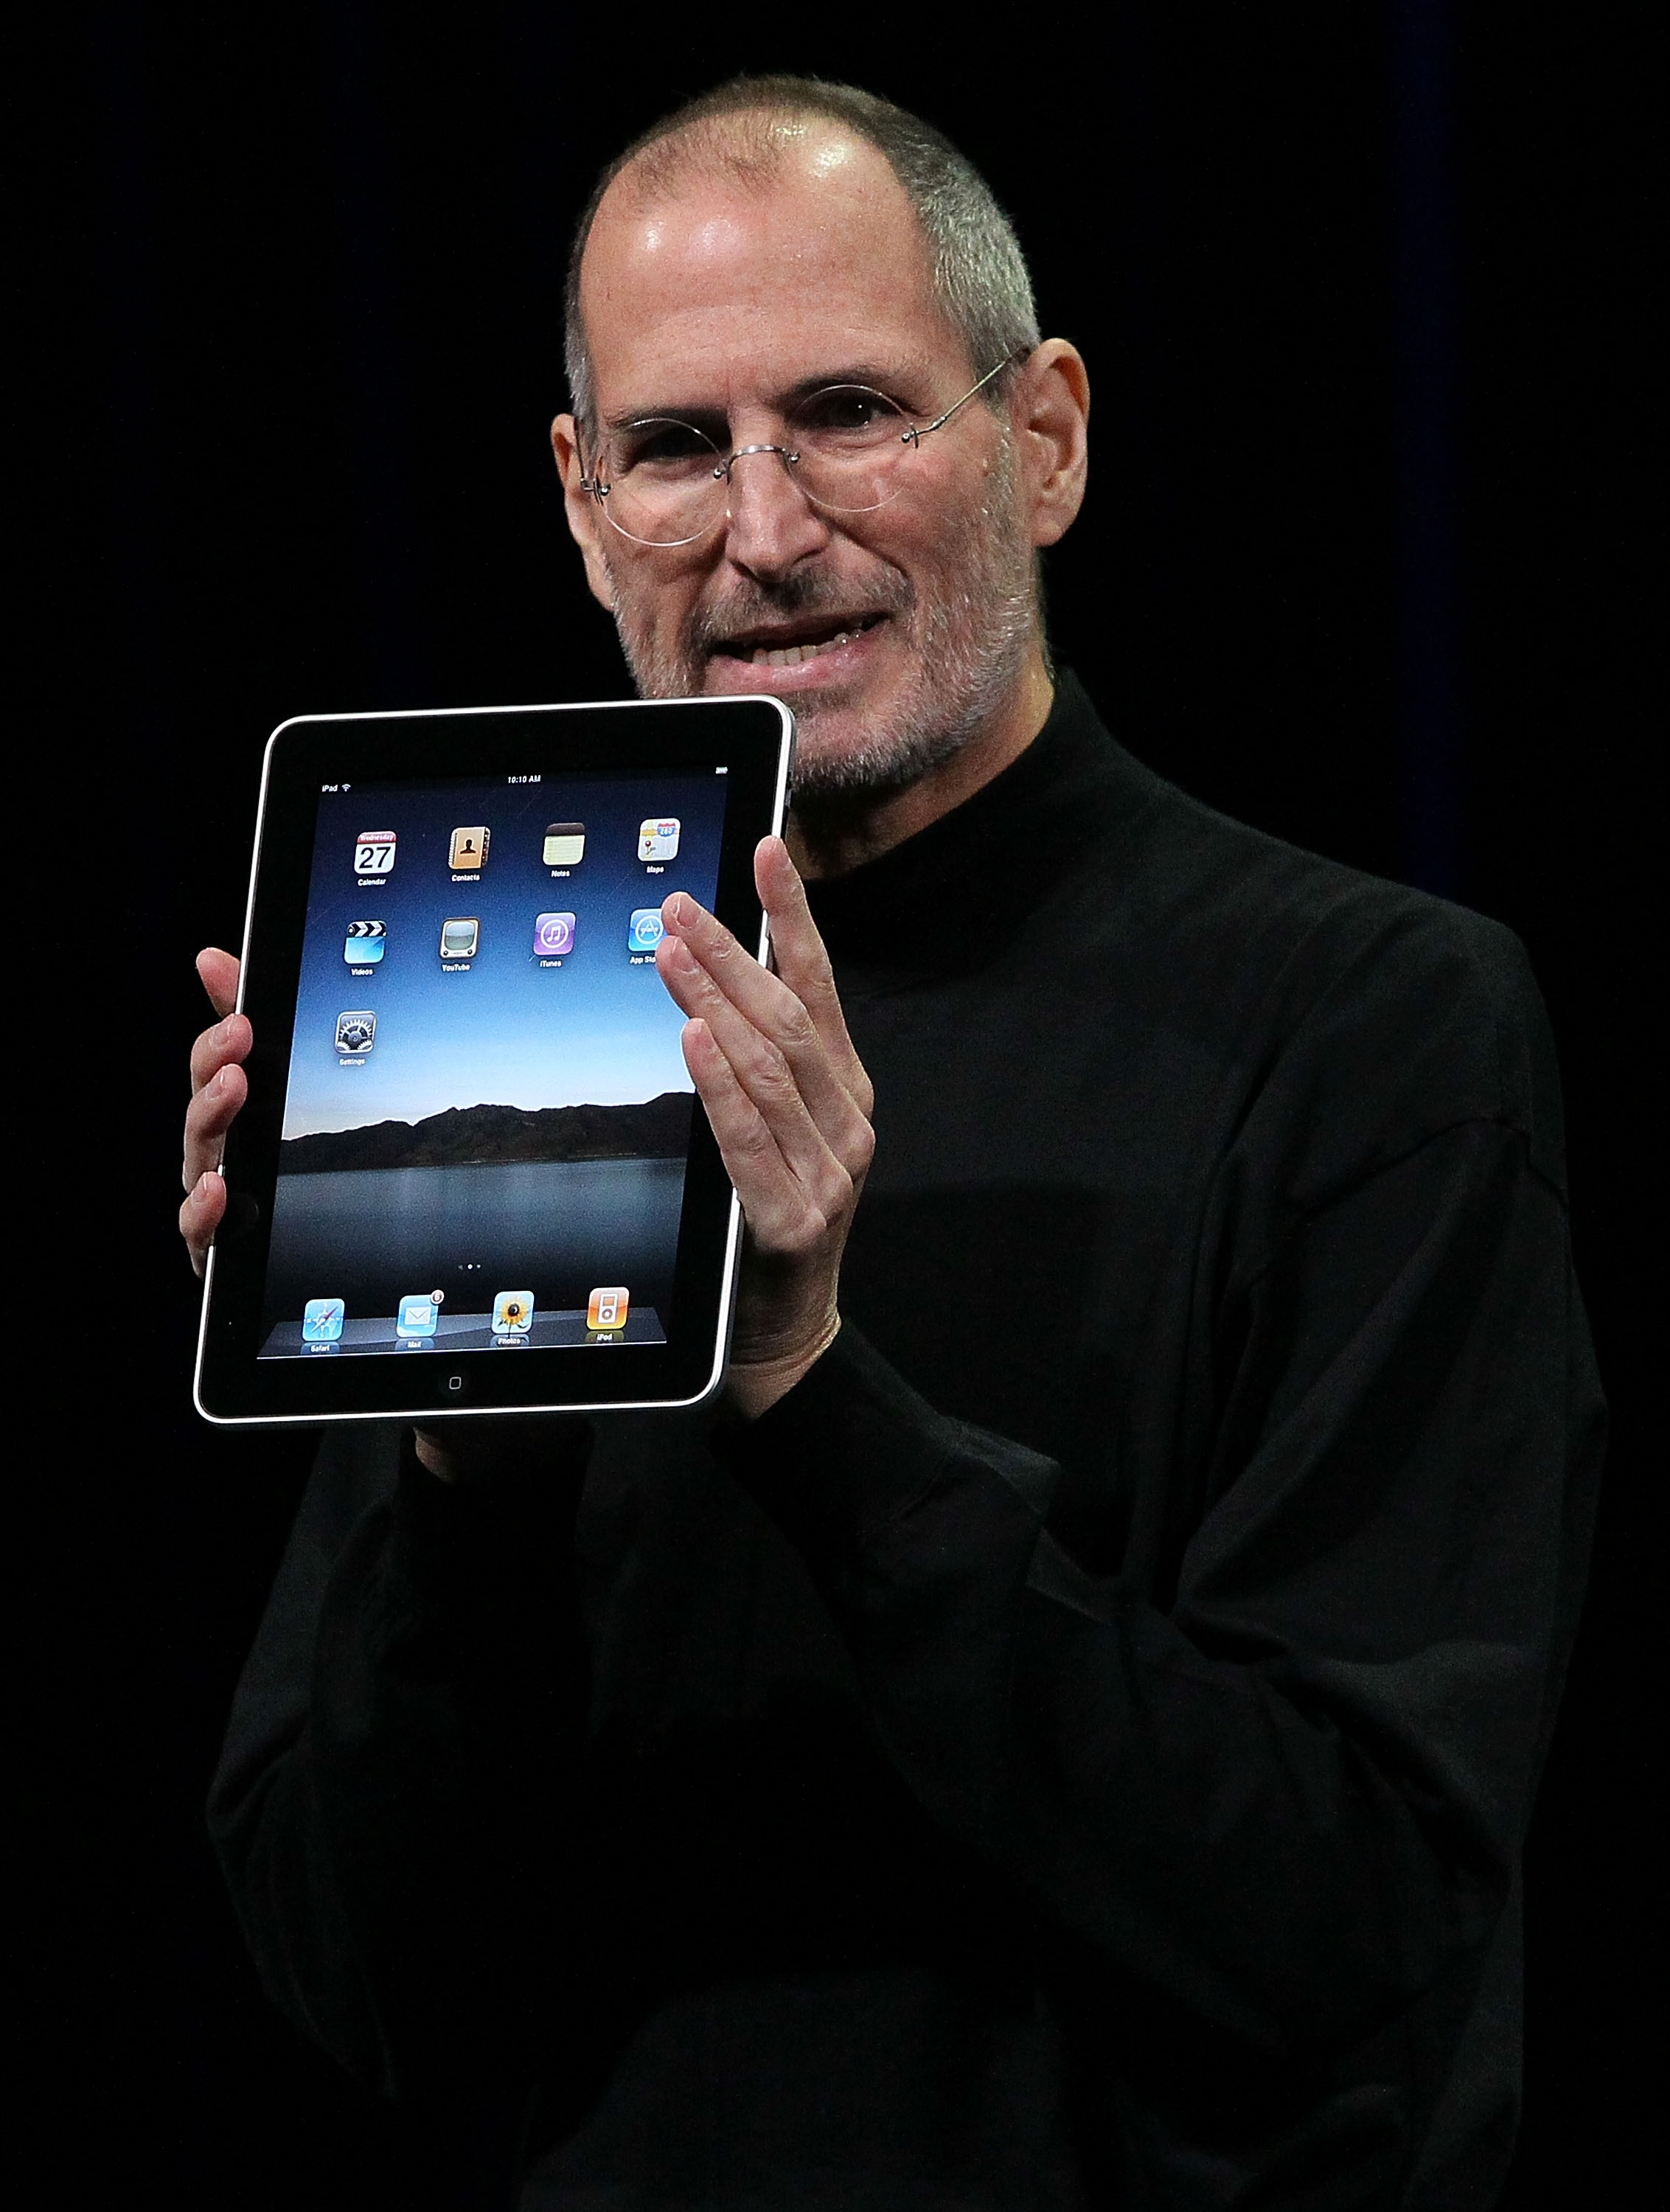 2010 The iPad is an Apple tablet computer that met mixed reviews, as users were not sure if it was intended to replace or supplement laptop use, though many praised its ability to connect to WiFi or 3G. That year, the iPad became the leader in the tablet computer market.